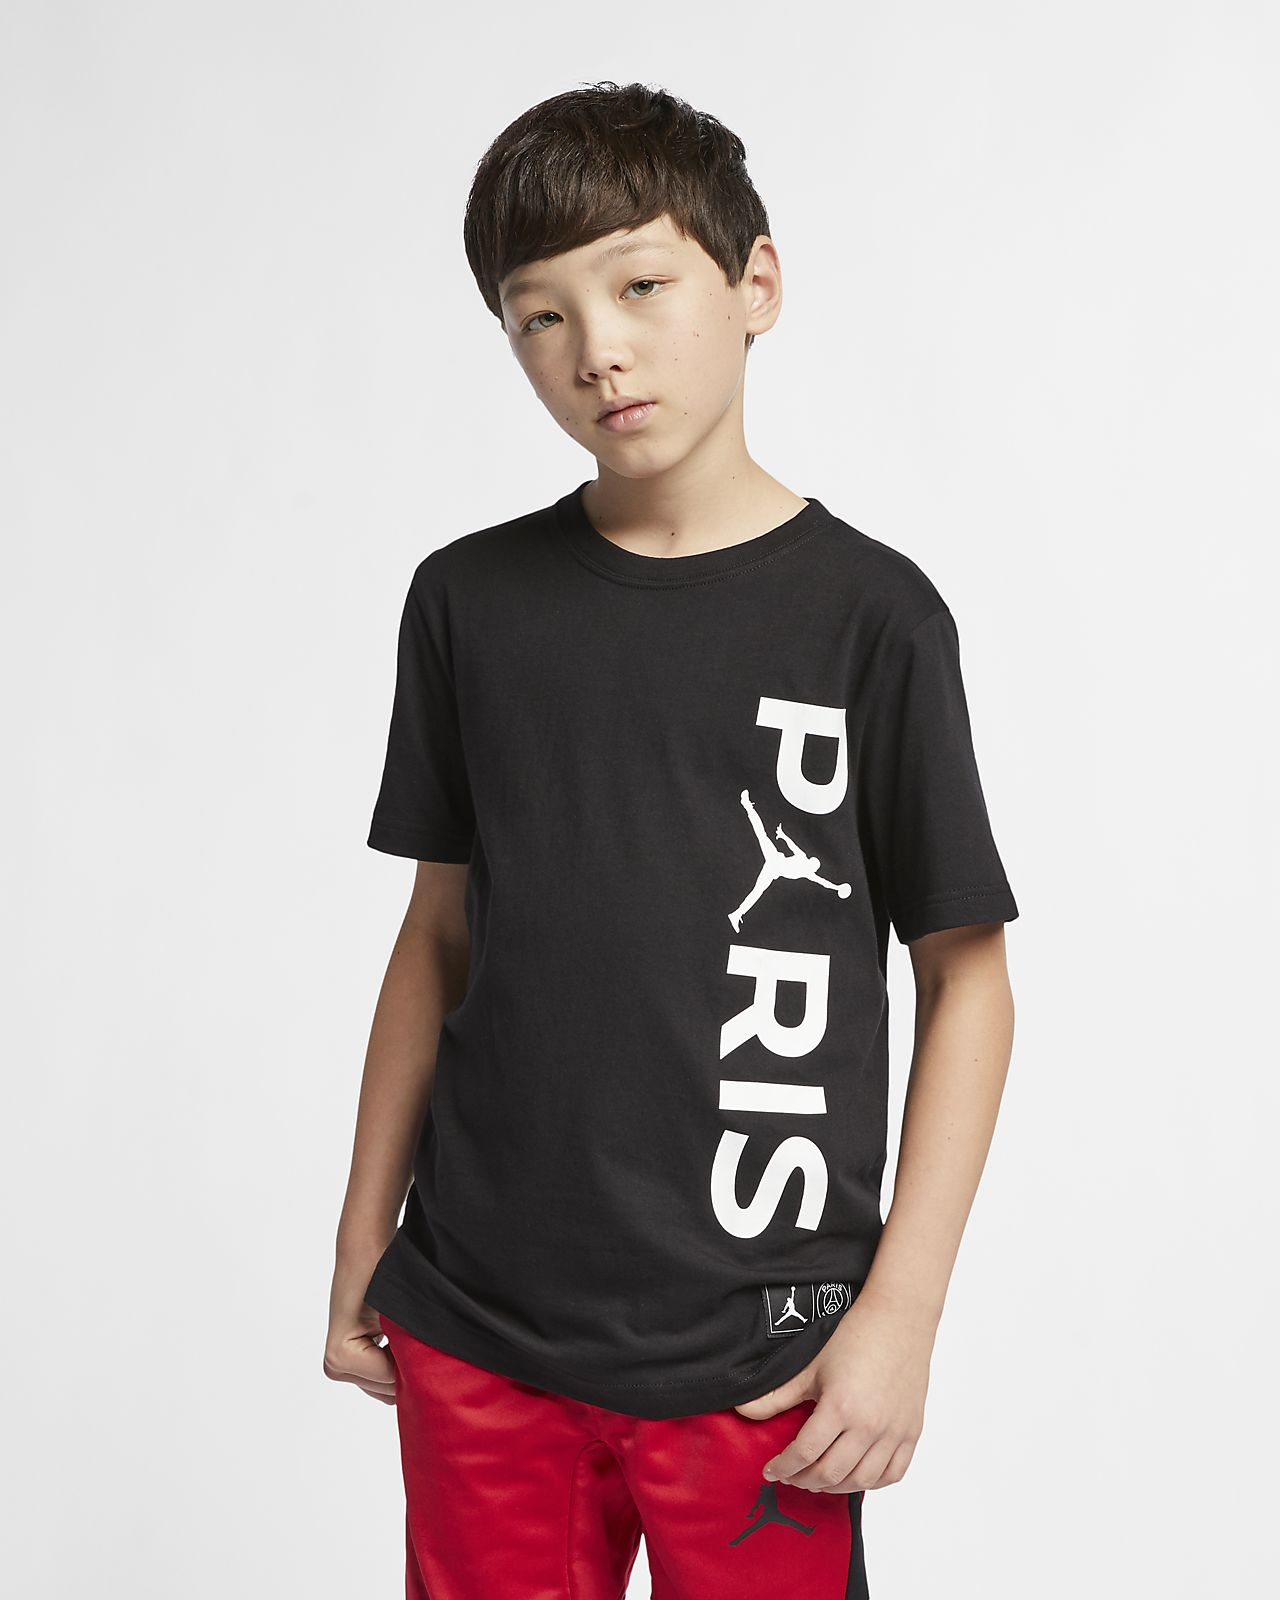 PSG Big Kids' (Boys') T-Shirt